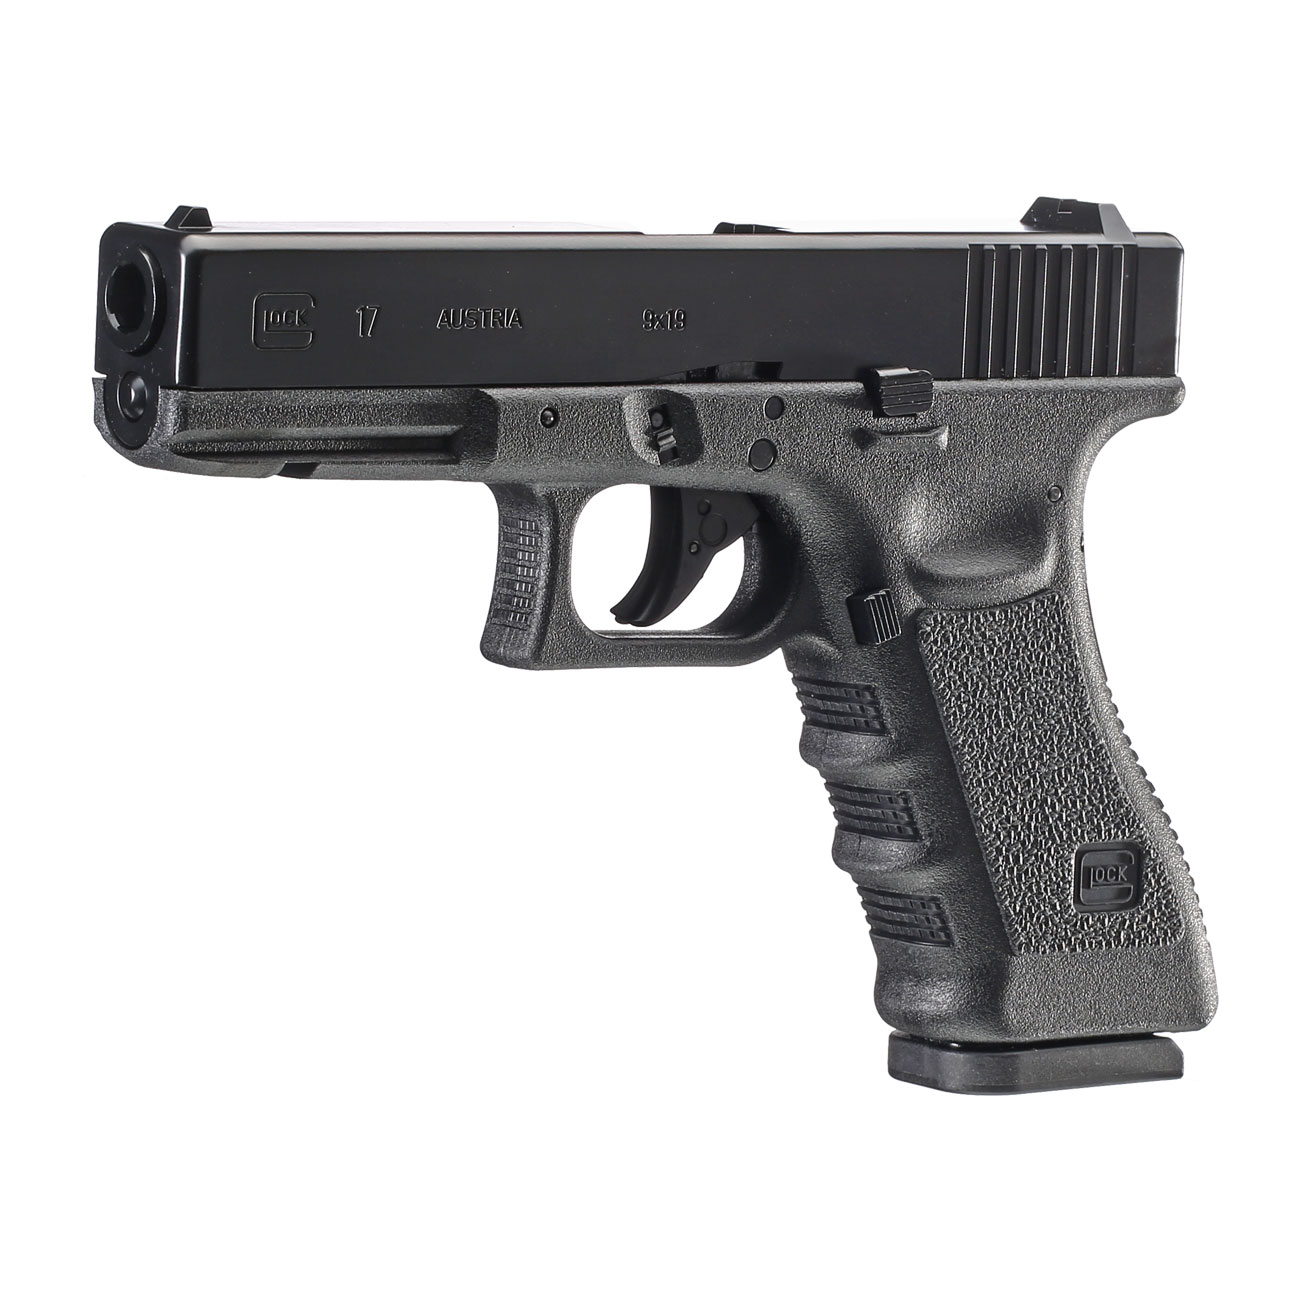 Glock 17 CO2 Luftpistole Kal. 4,5 mm BB 2